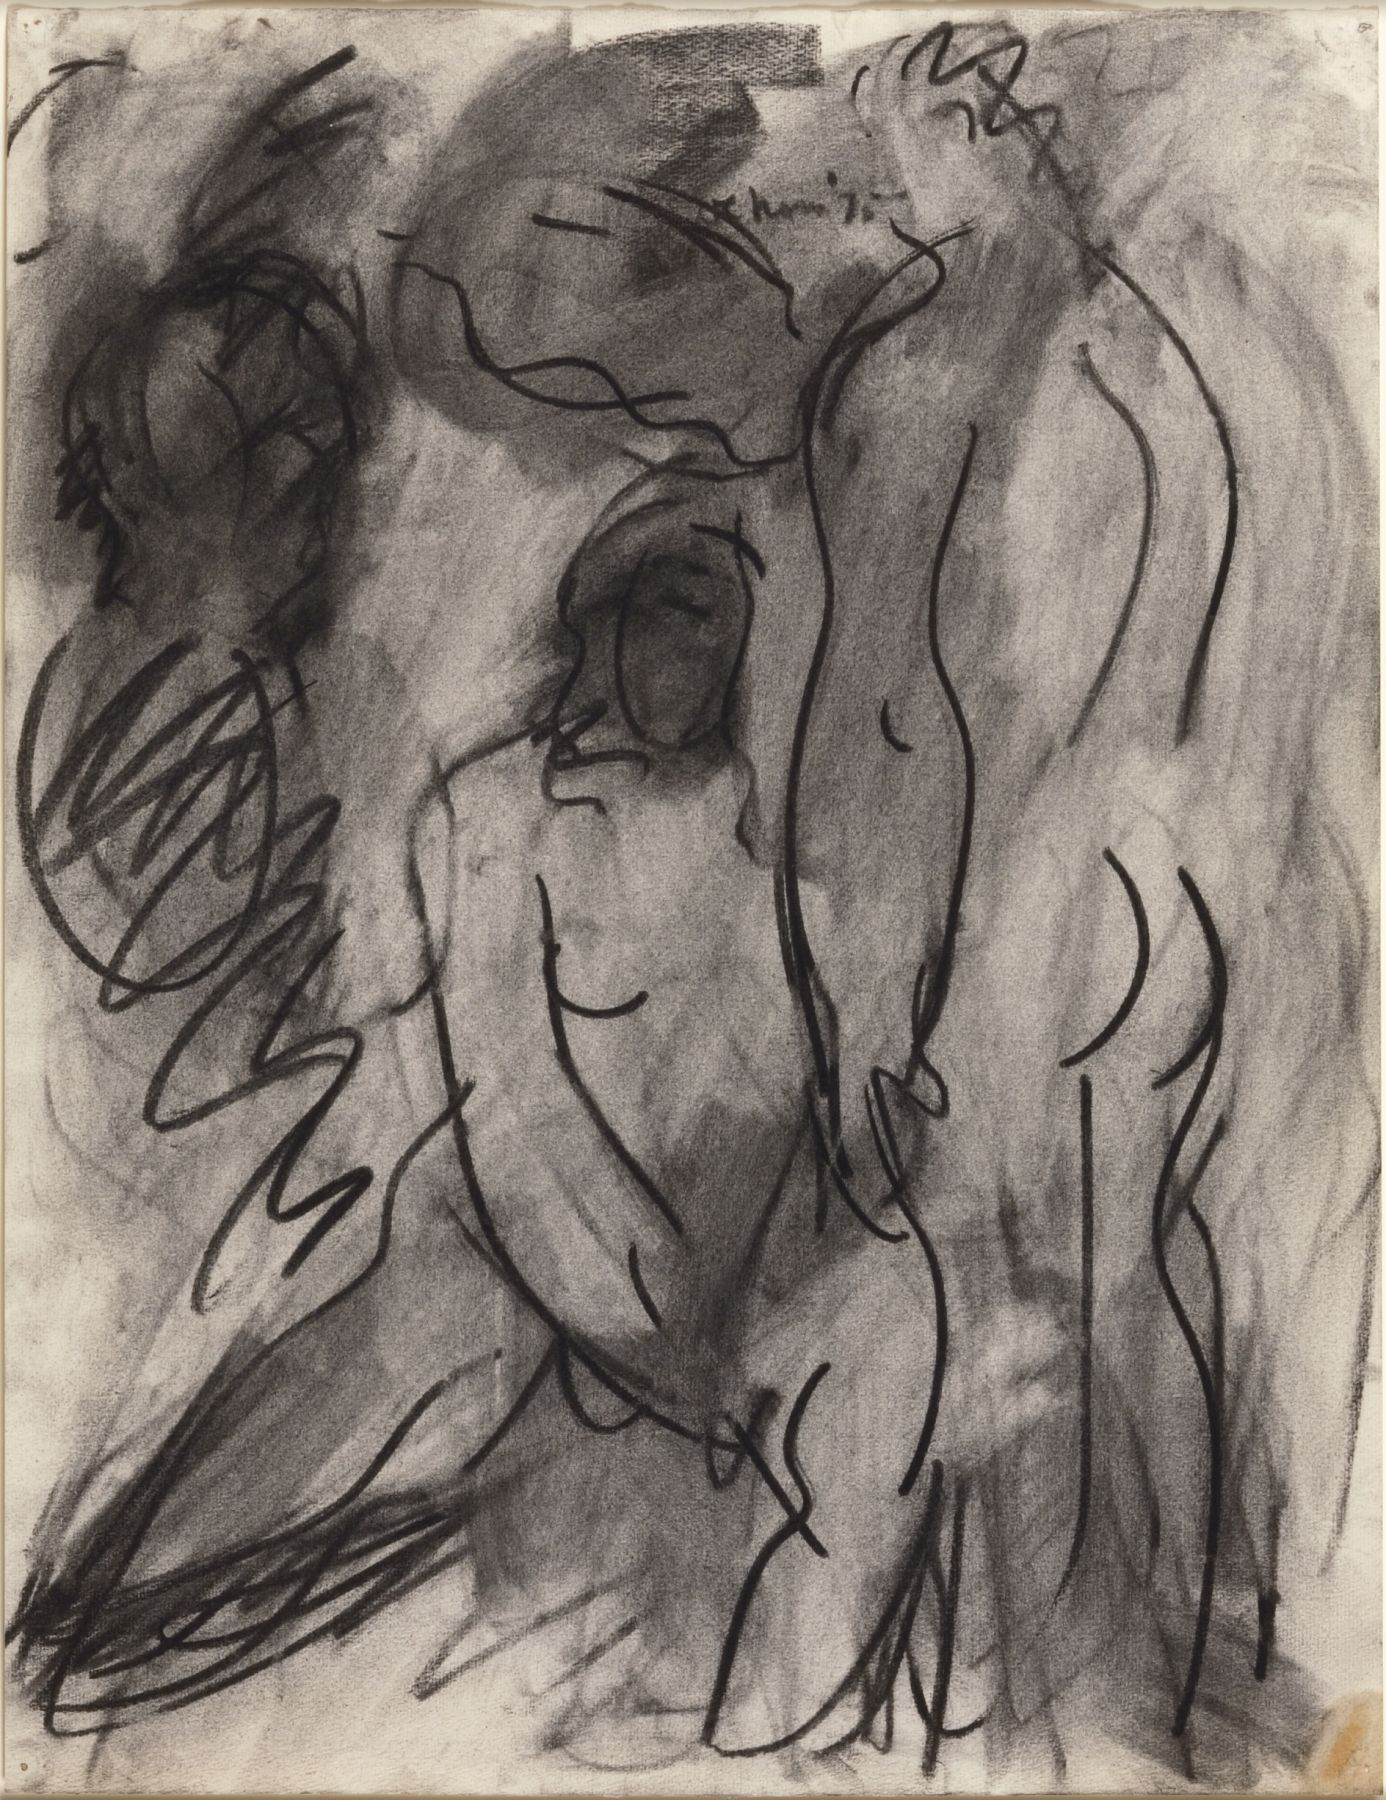 Two Figures, 1975